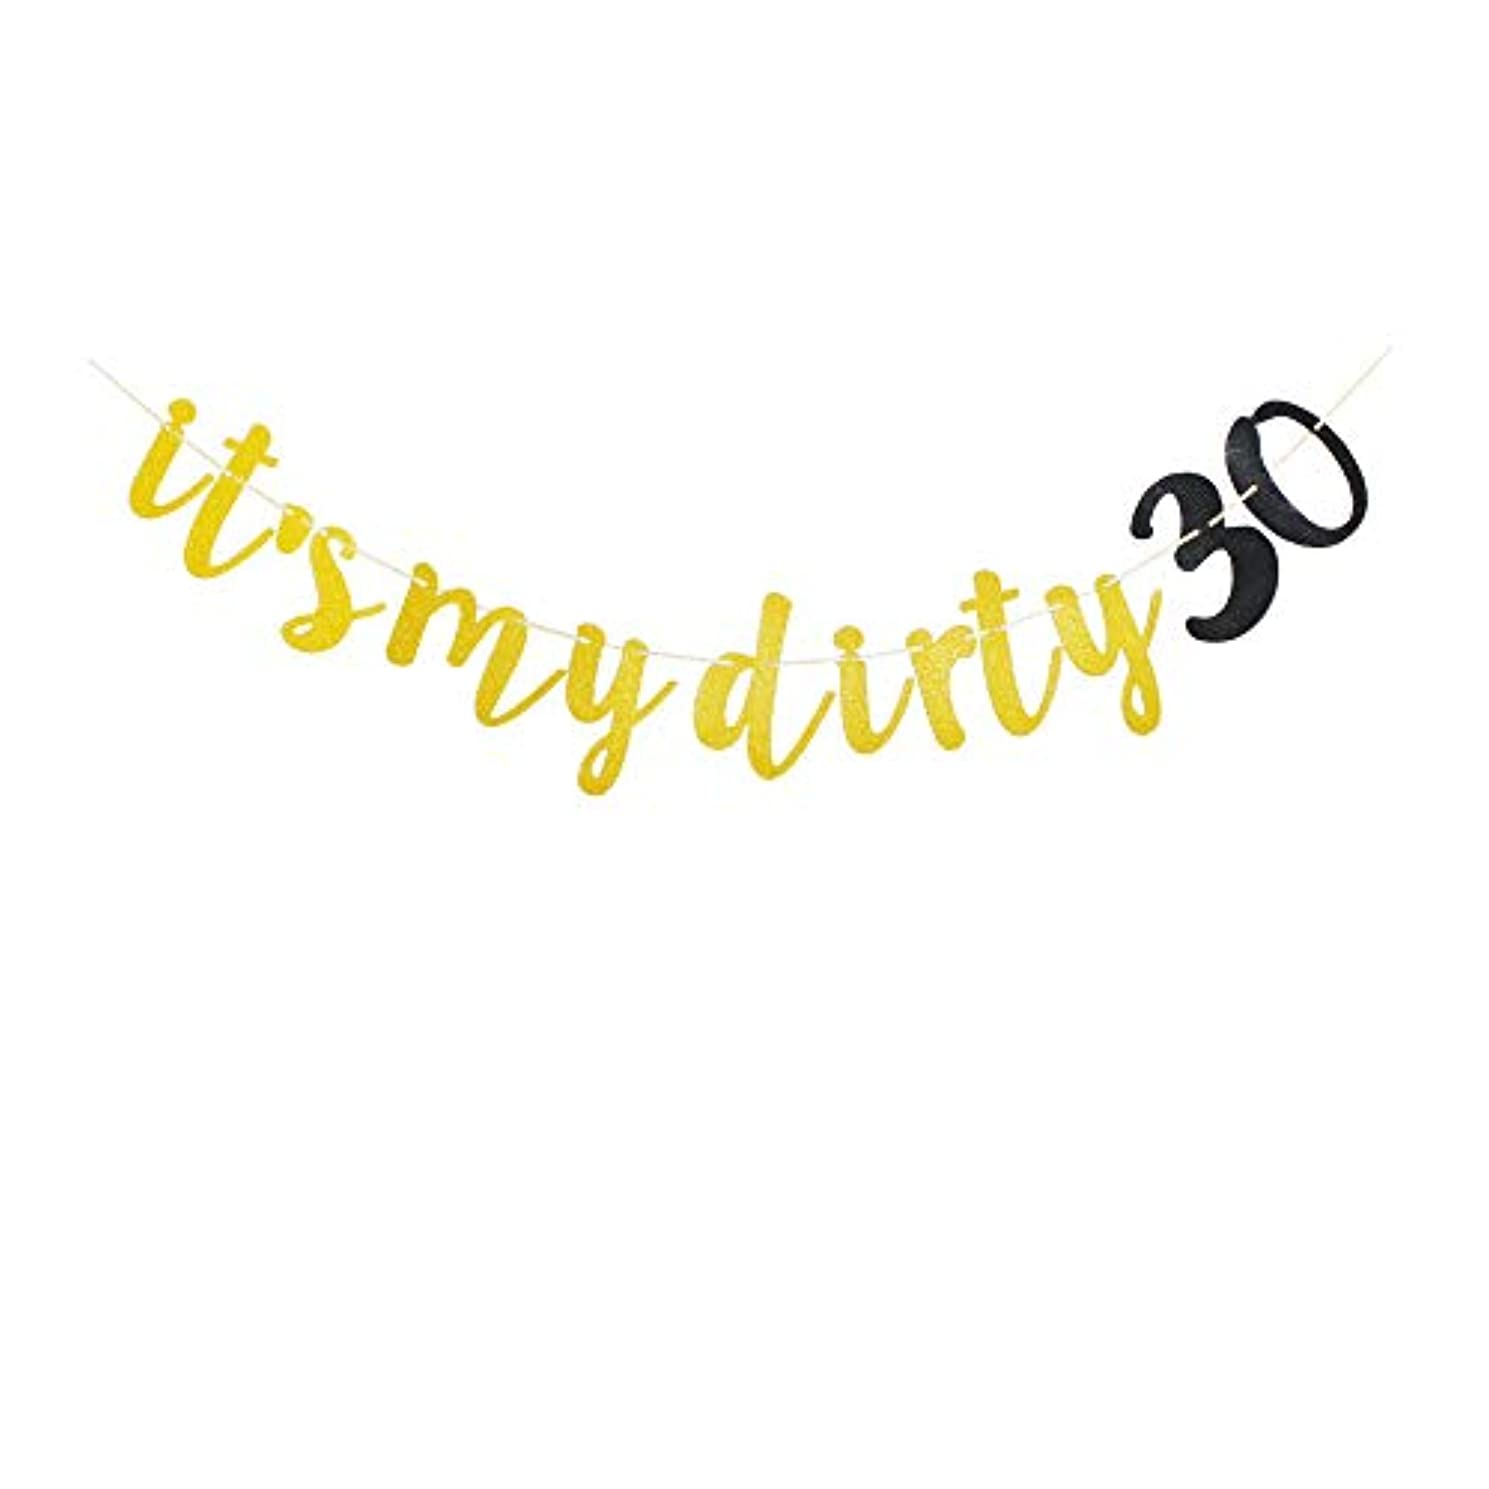 It's My Dirty 30 Banner for 30th Birthday Party Sign Decors, 30 Years Old Birthday Party Supplies